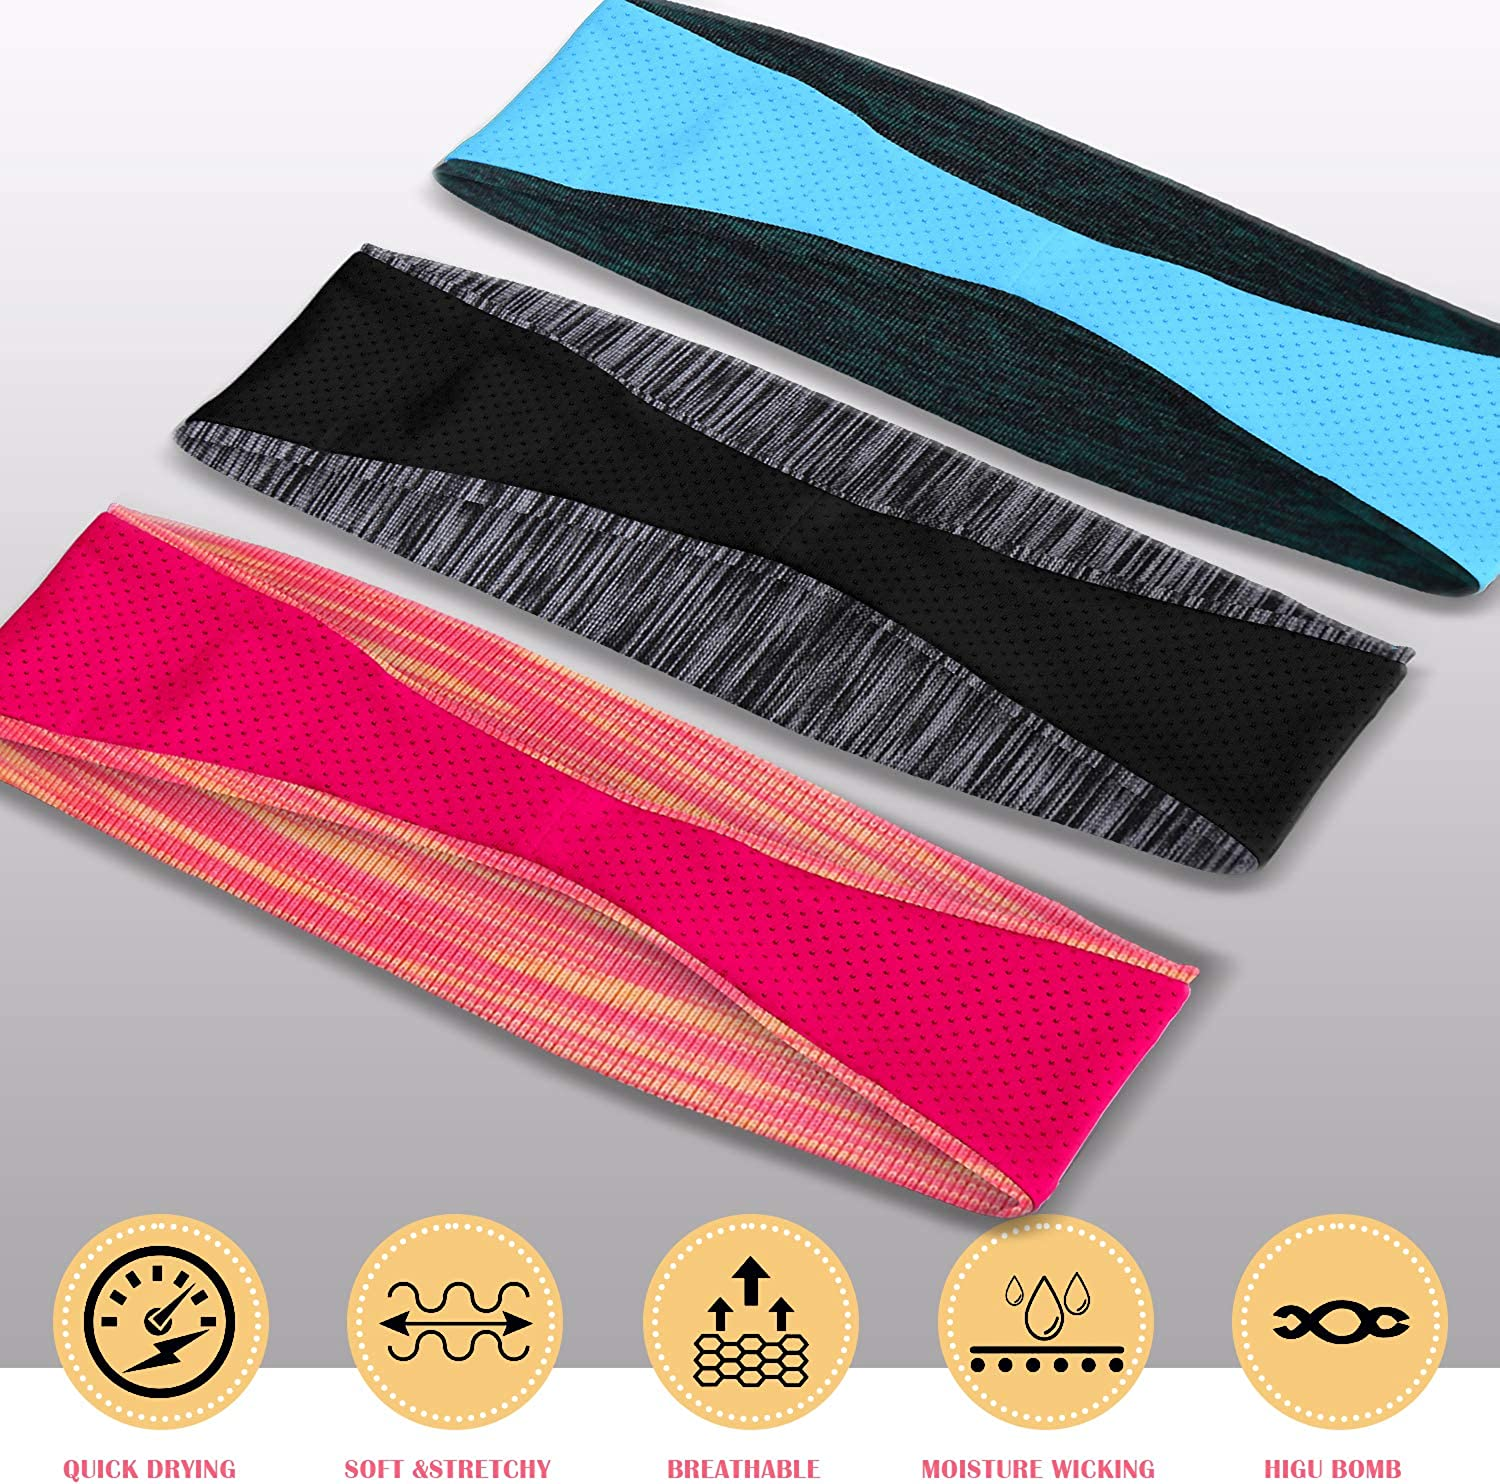 EasYoung Headbands for Women 3-Pack Sweat Wicking Headbands Womens Yoga Headbands Sports Cooling Hair Band for Running Fitness Elastic Non Slip